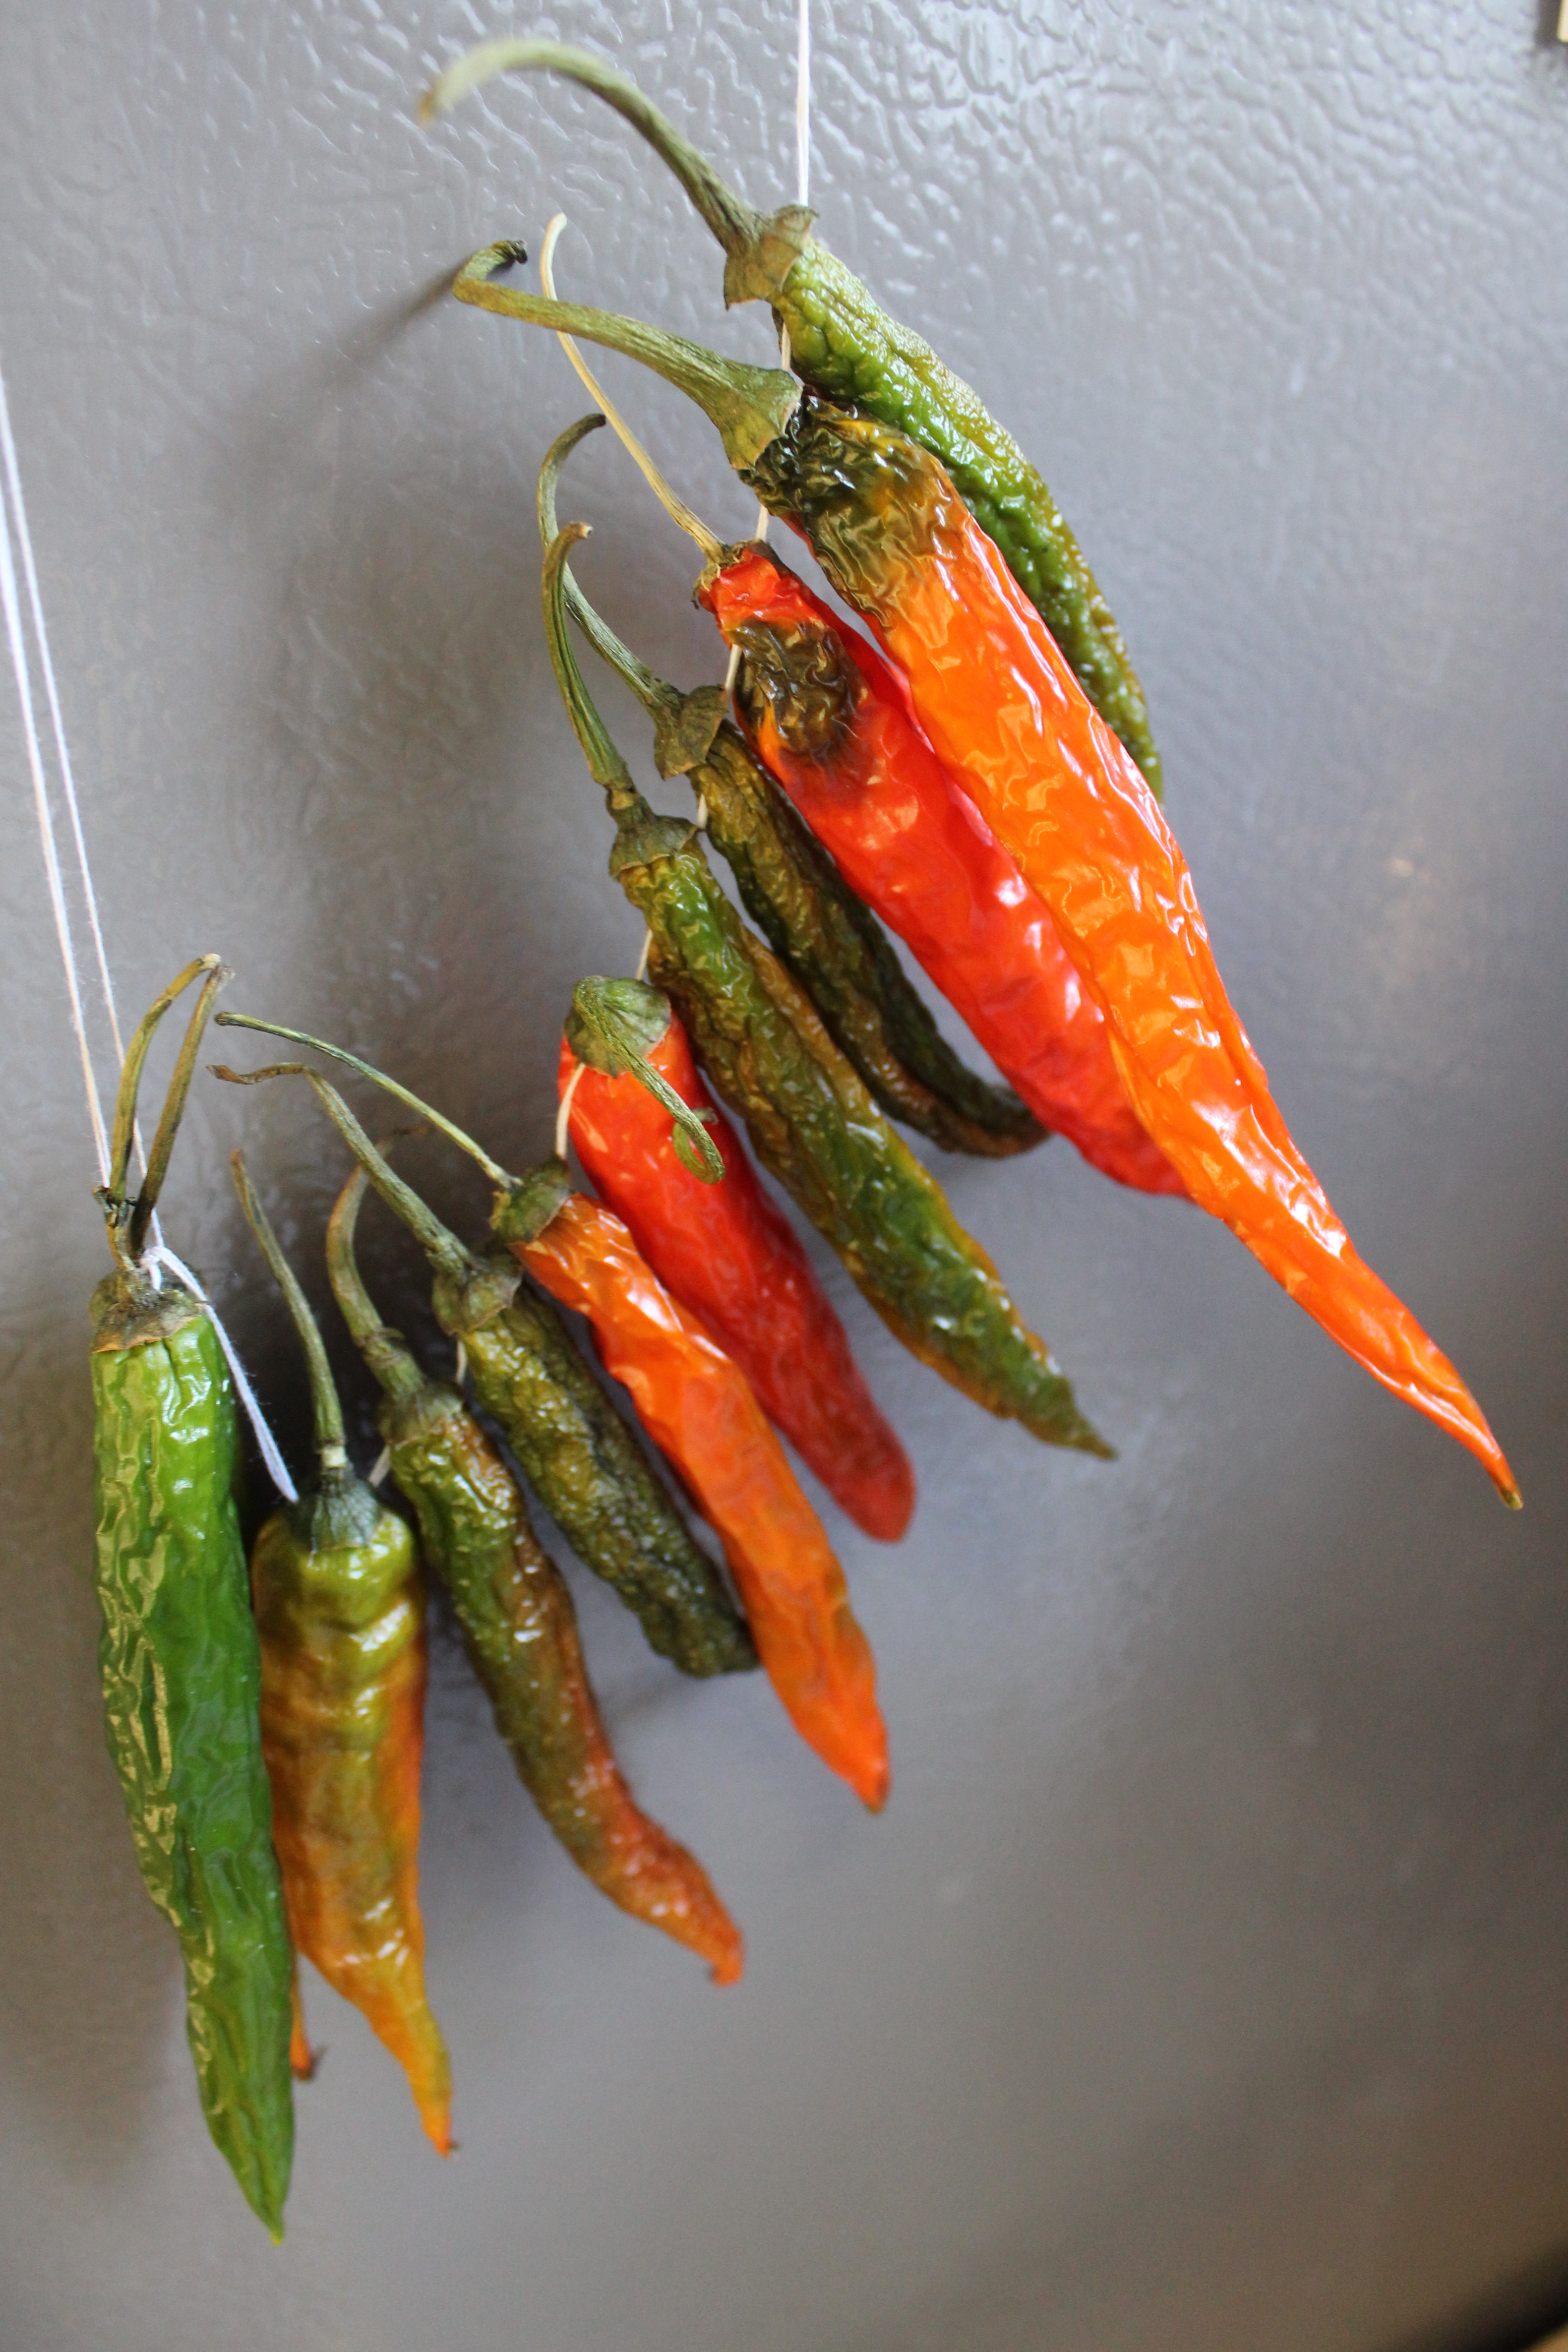 drying chili peppers - Google Search   ristras   Pinterest   Pepper ...